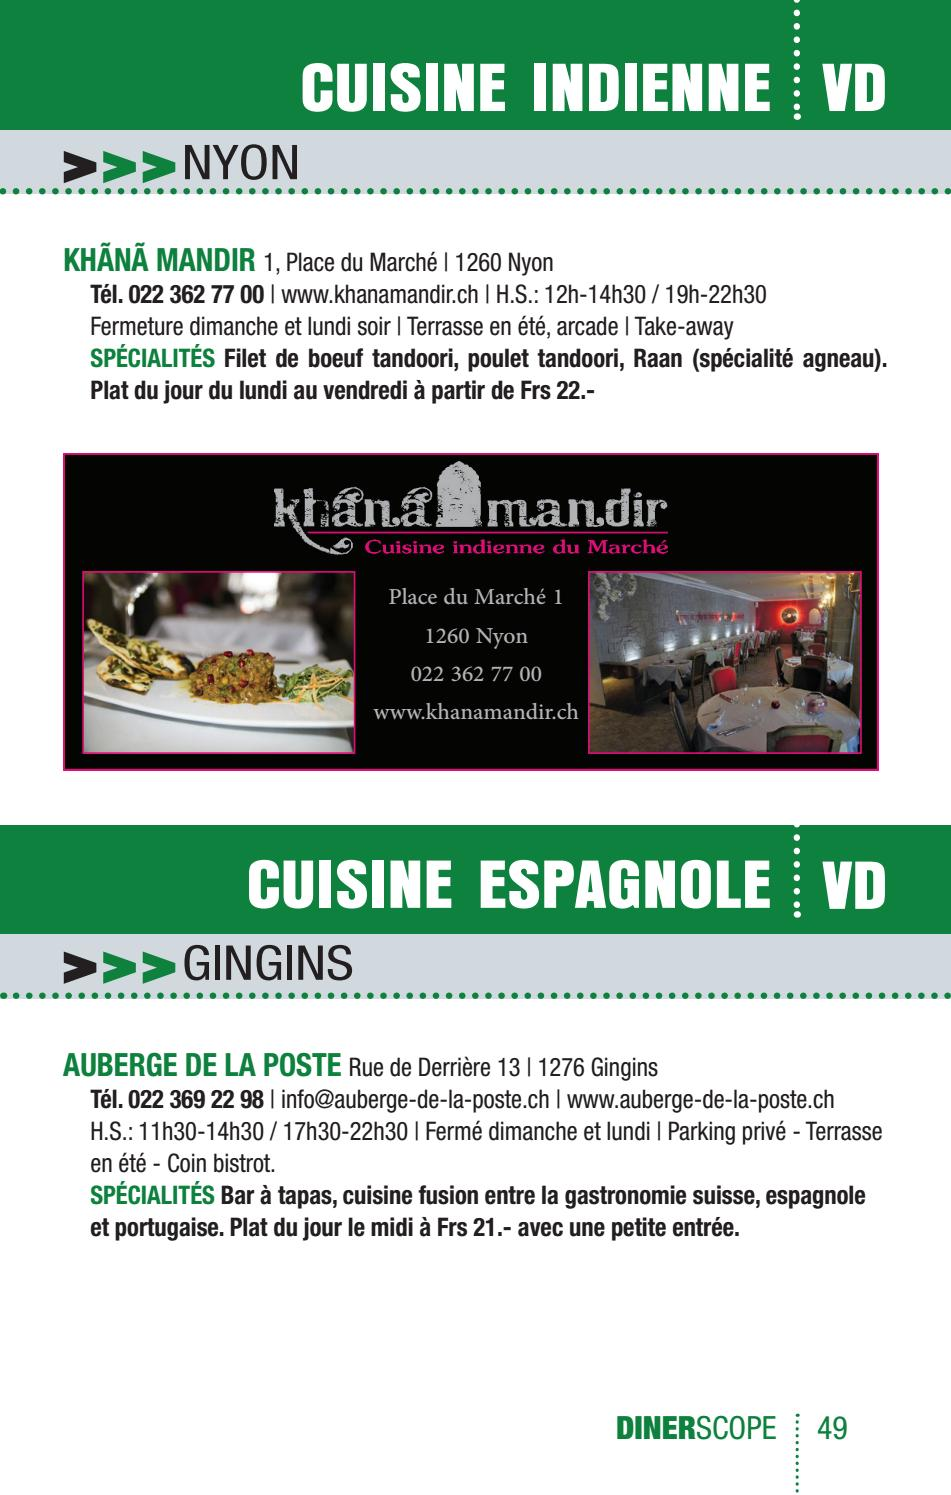 Le Guide Dinerscope 2018 By Dinerscope Suisse Issuu